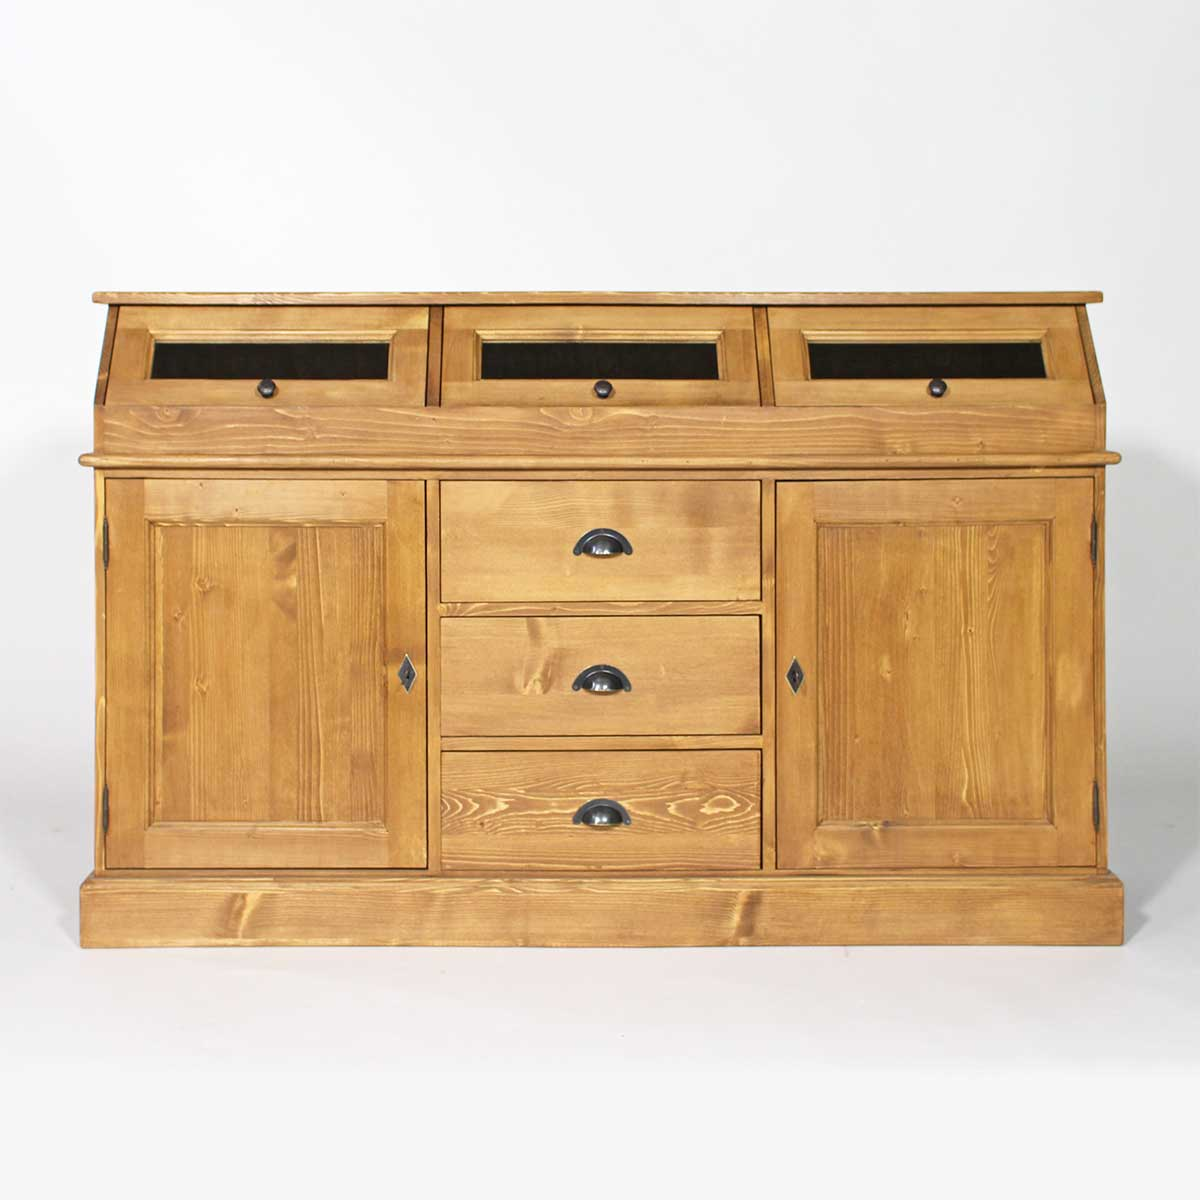 Meuble buffet bas a trappes en pin massif ebay for Meuble pin massif